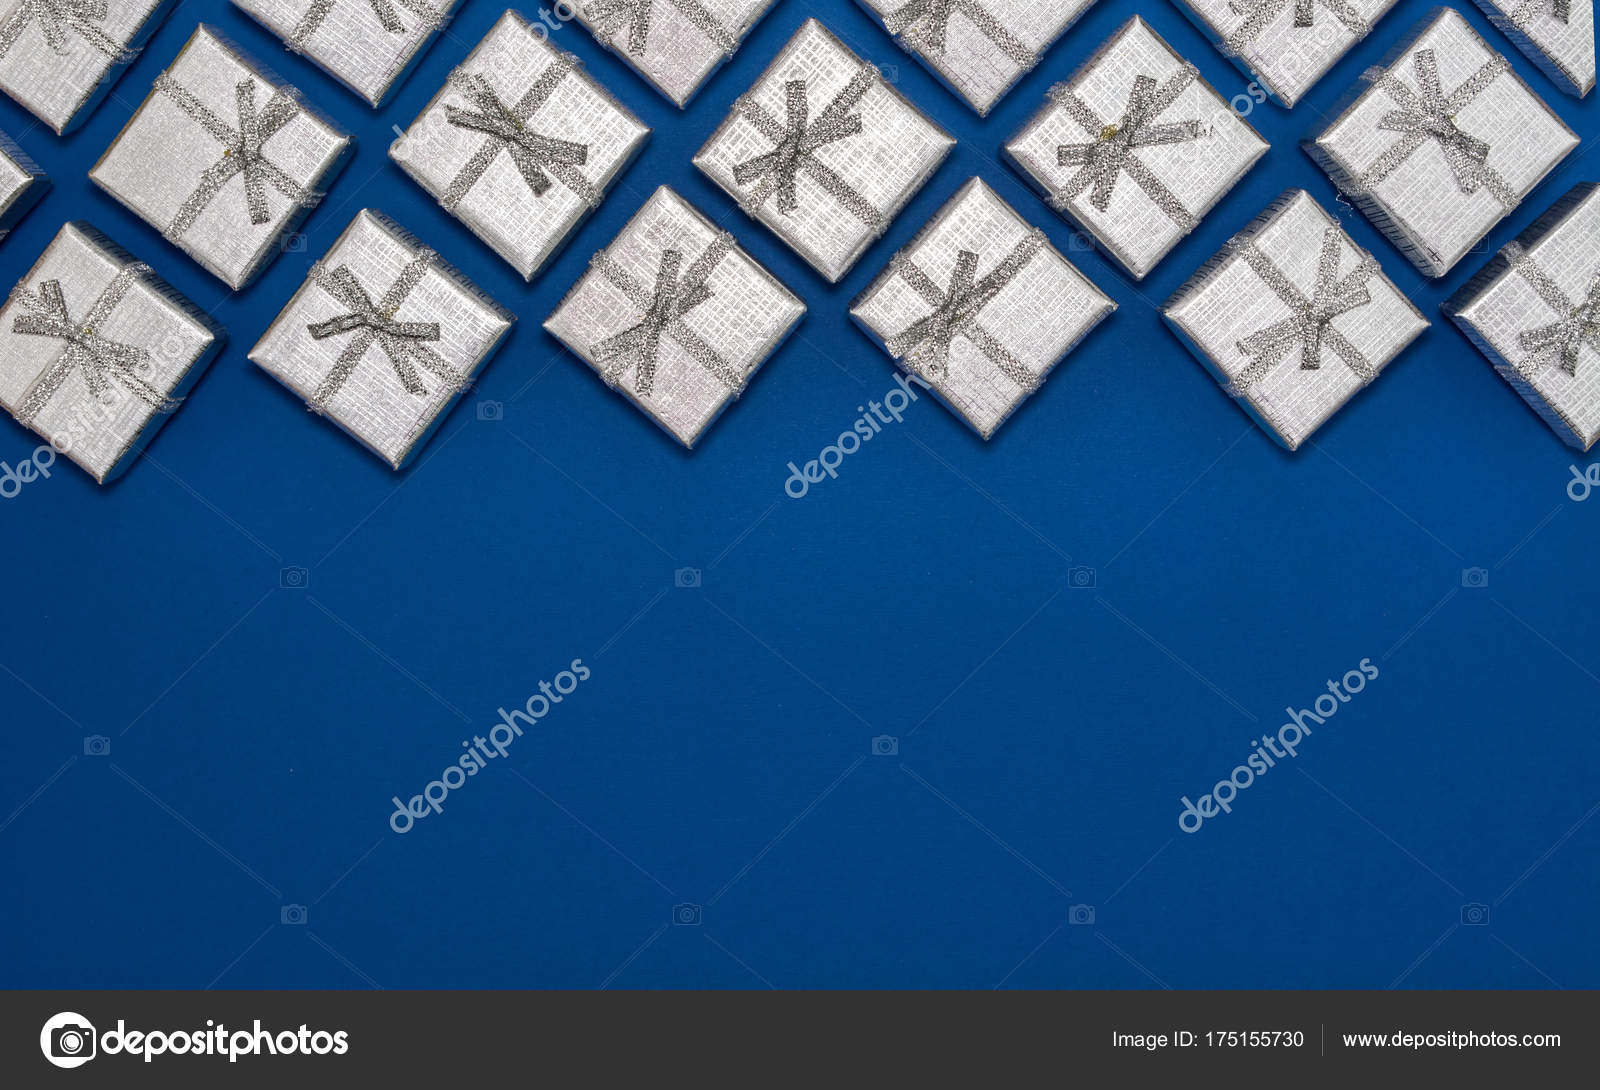 border of silver shiny gifts on blue background new years and christmas decorations stock